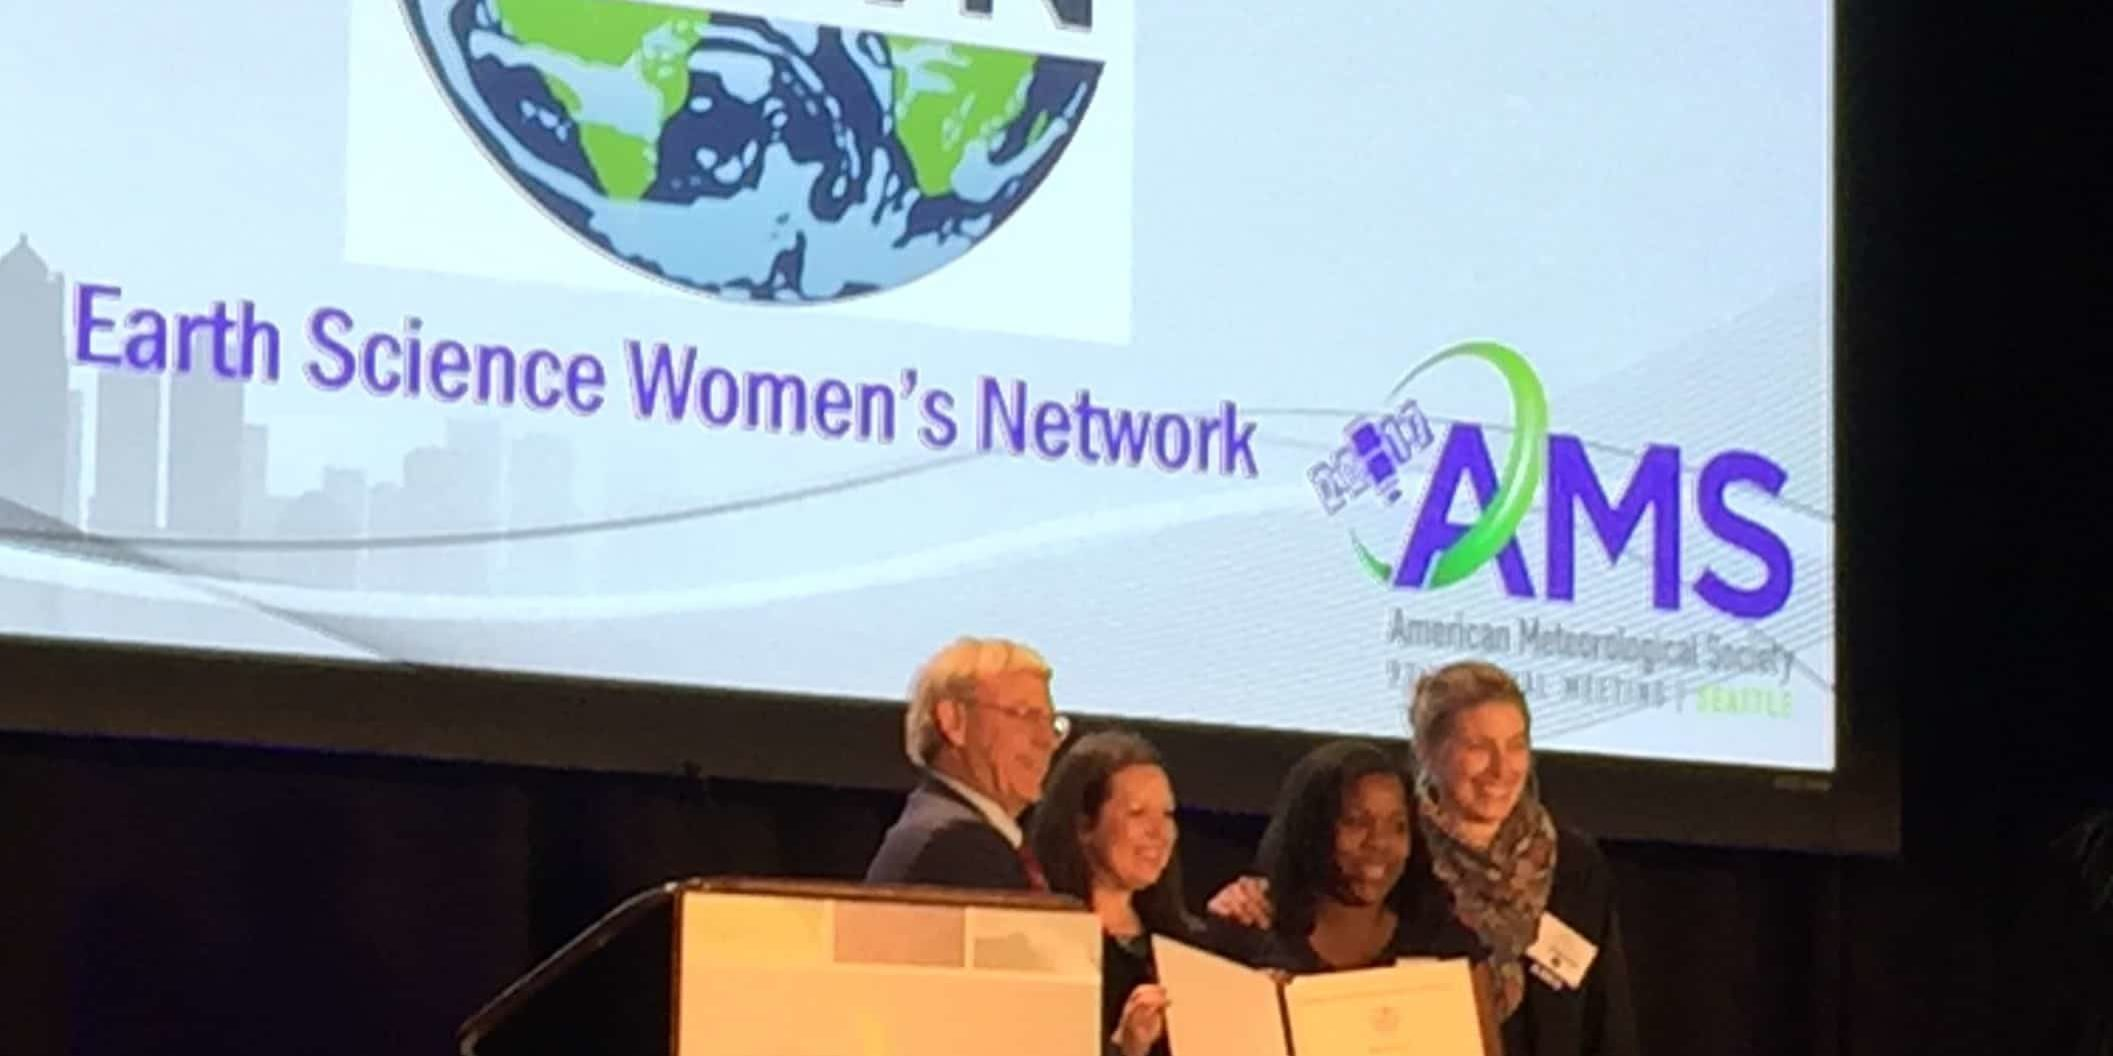 "In January of 2017, the Earth Science Women's Network received a special award from the American Meteorological Society for inspirational commitment to broadening the participation of women in the Earth sciences, providing a supportive environment for peer mentoring, and professional development. ESWN's activities ""have been shown to remove feelings of isolation and help women in the geosciences overcome barriers to professional advancement."" Thank you to the American Meteorological Society!"